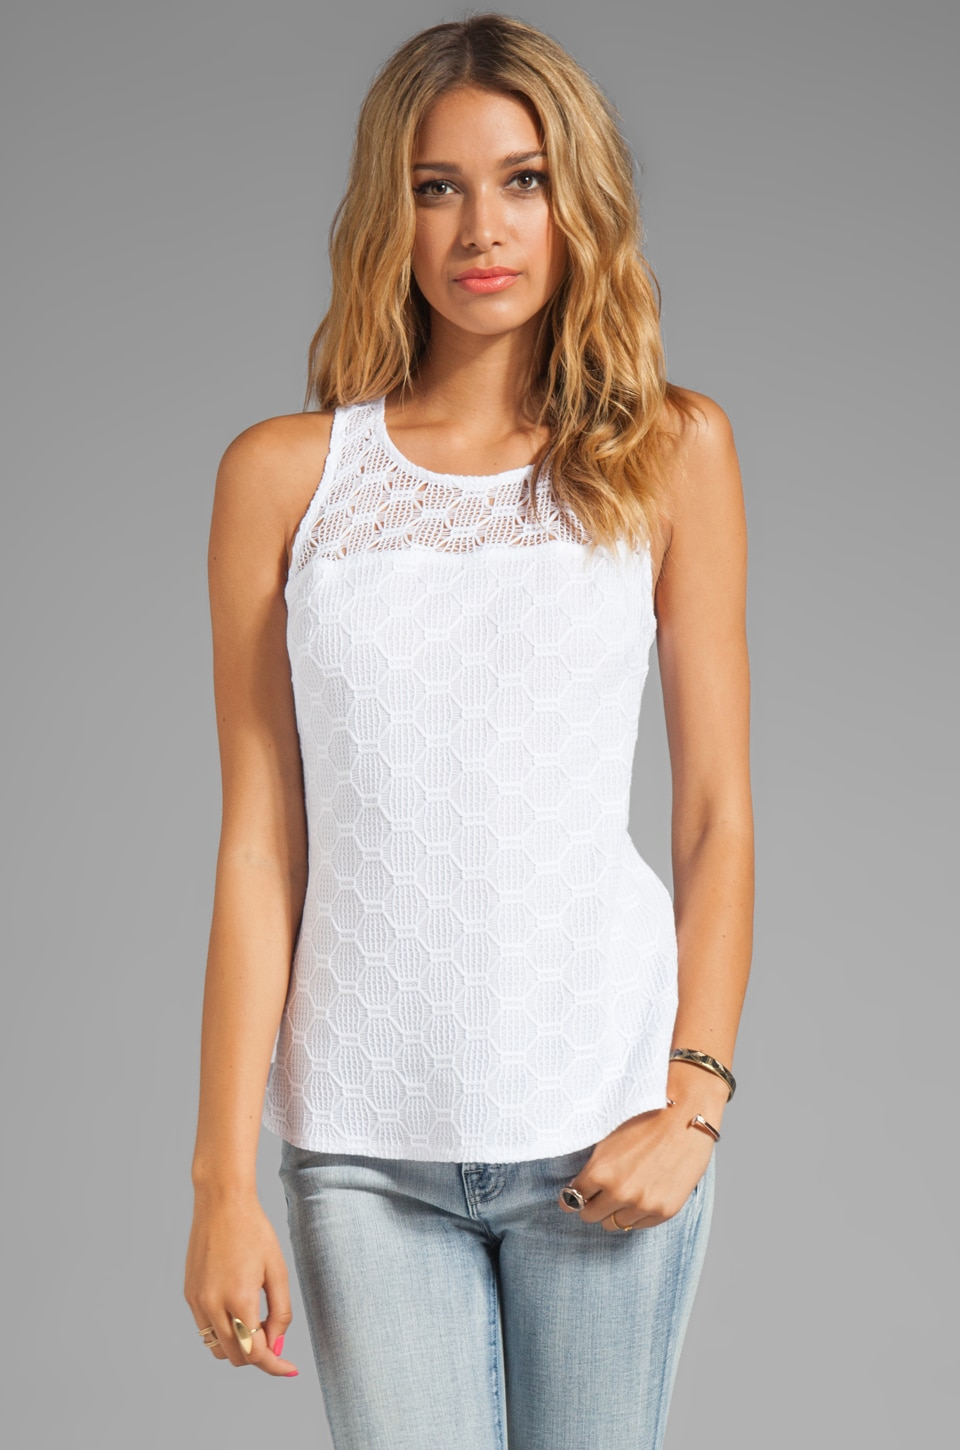 Trina Turk Hexagon Open Lace Deanna Top in Whitewash